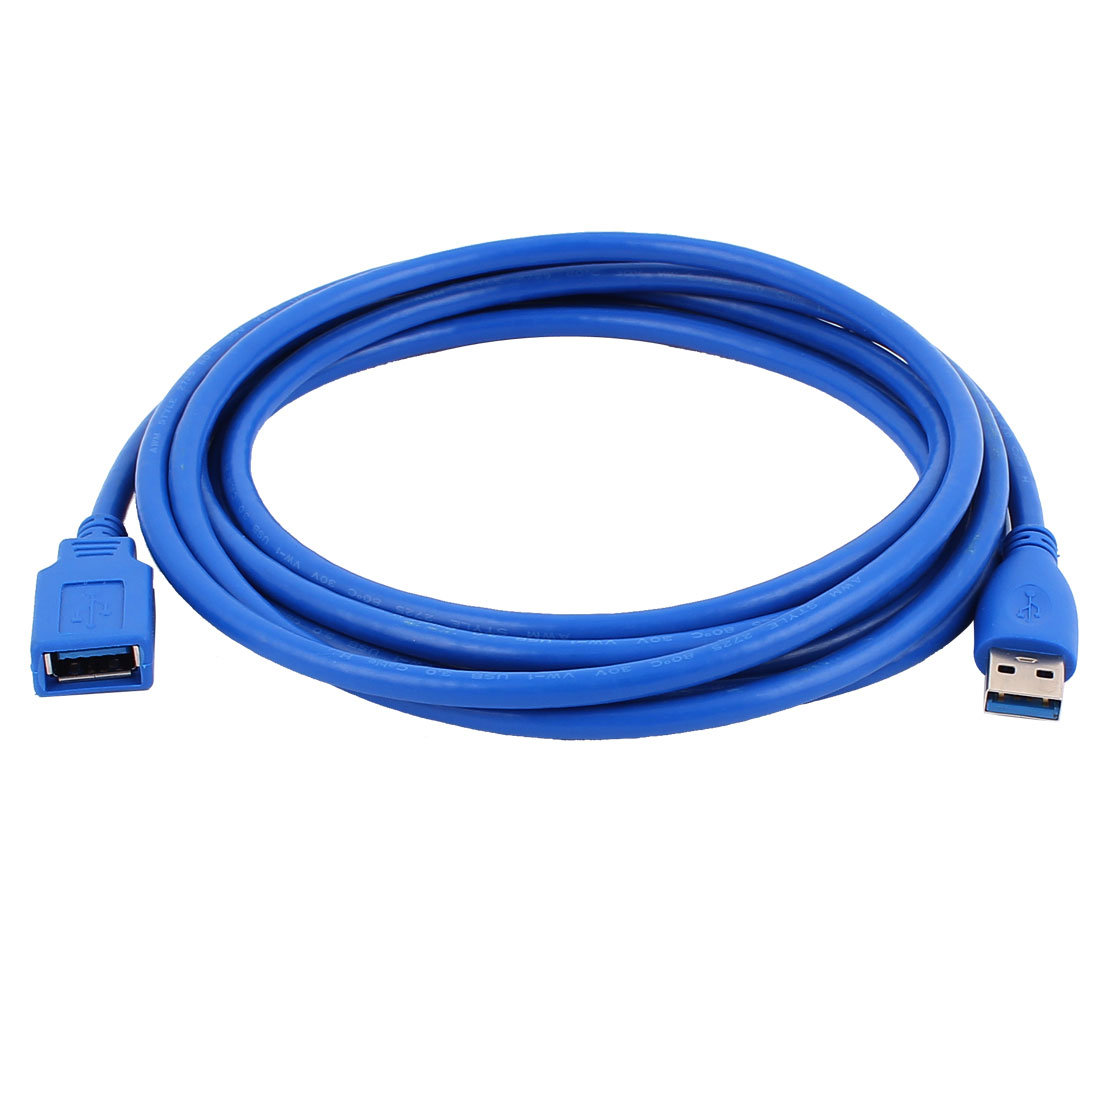 3Meters 10Ft SuperSpeed USB 3.0 Type A Male to Female Data Extension Cable Blue